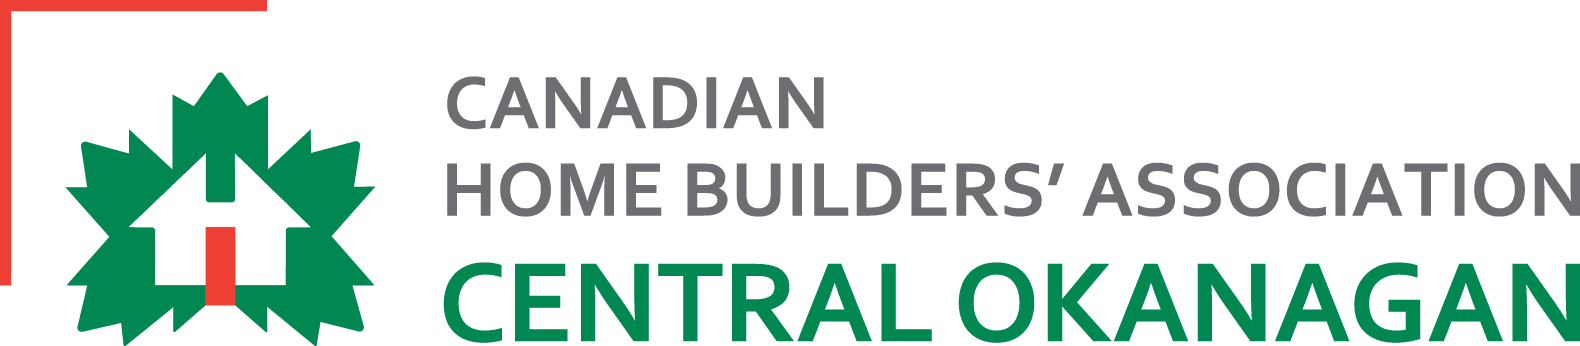 Canadian Home Builders Association Central Okanagan logo in red, green, and grey